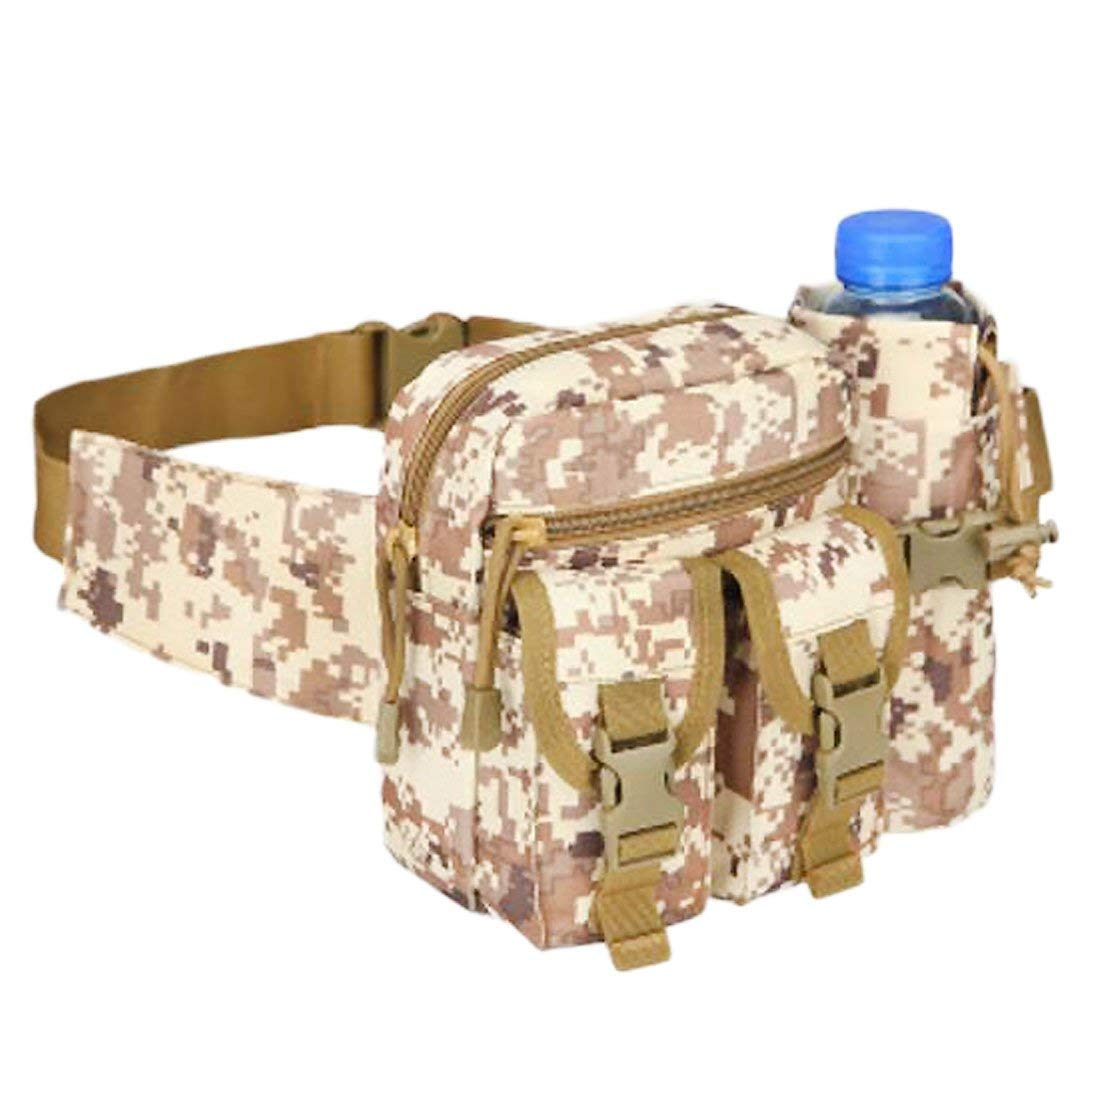 ZCFX,Outdoor Running Pockets,Small Waterproof Bag,Tactical Kettle Pockets,Pockets